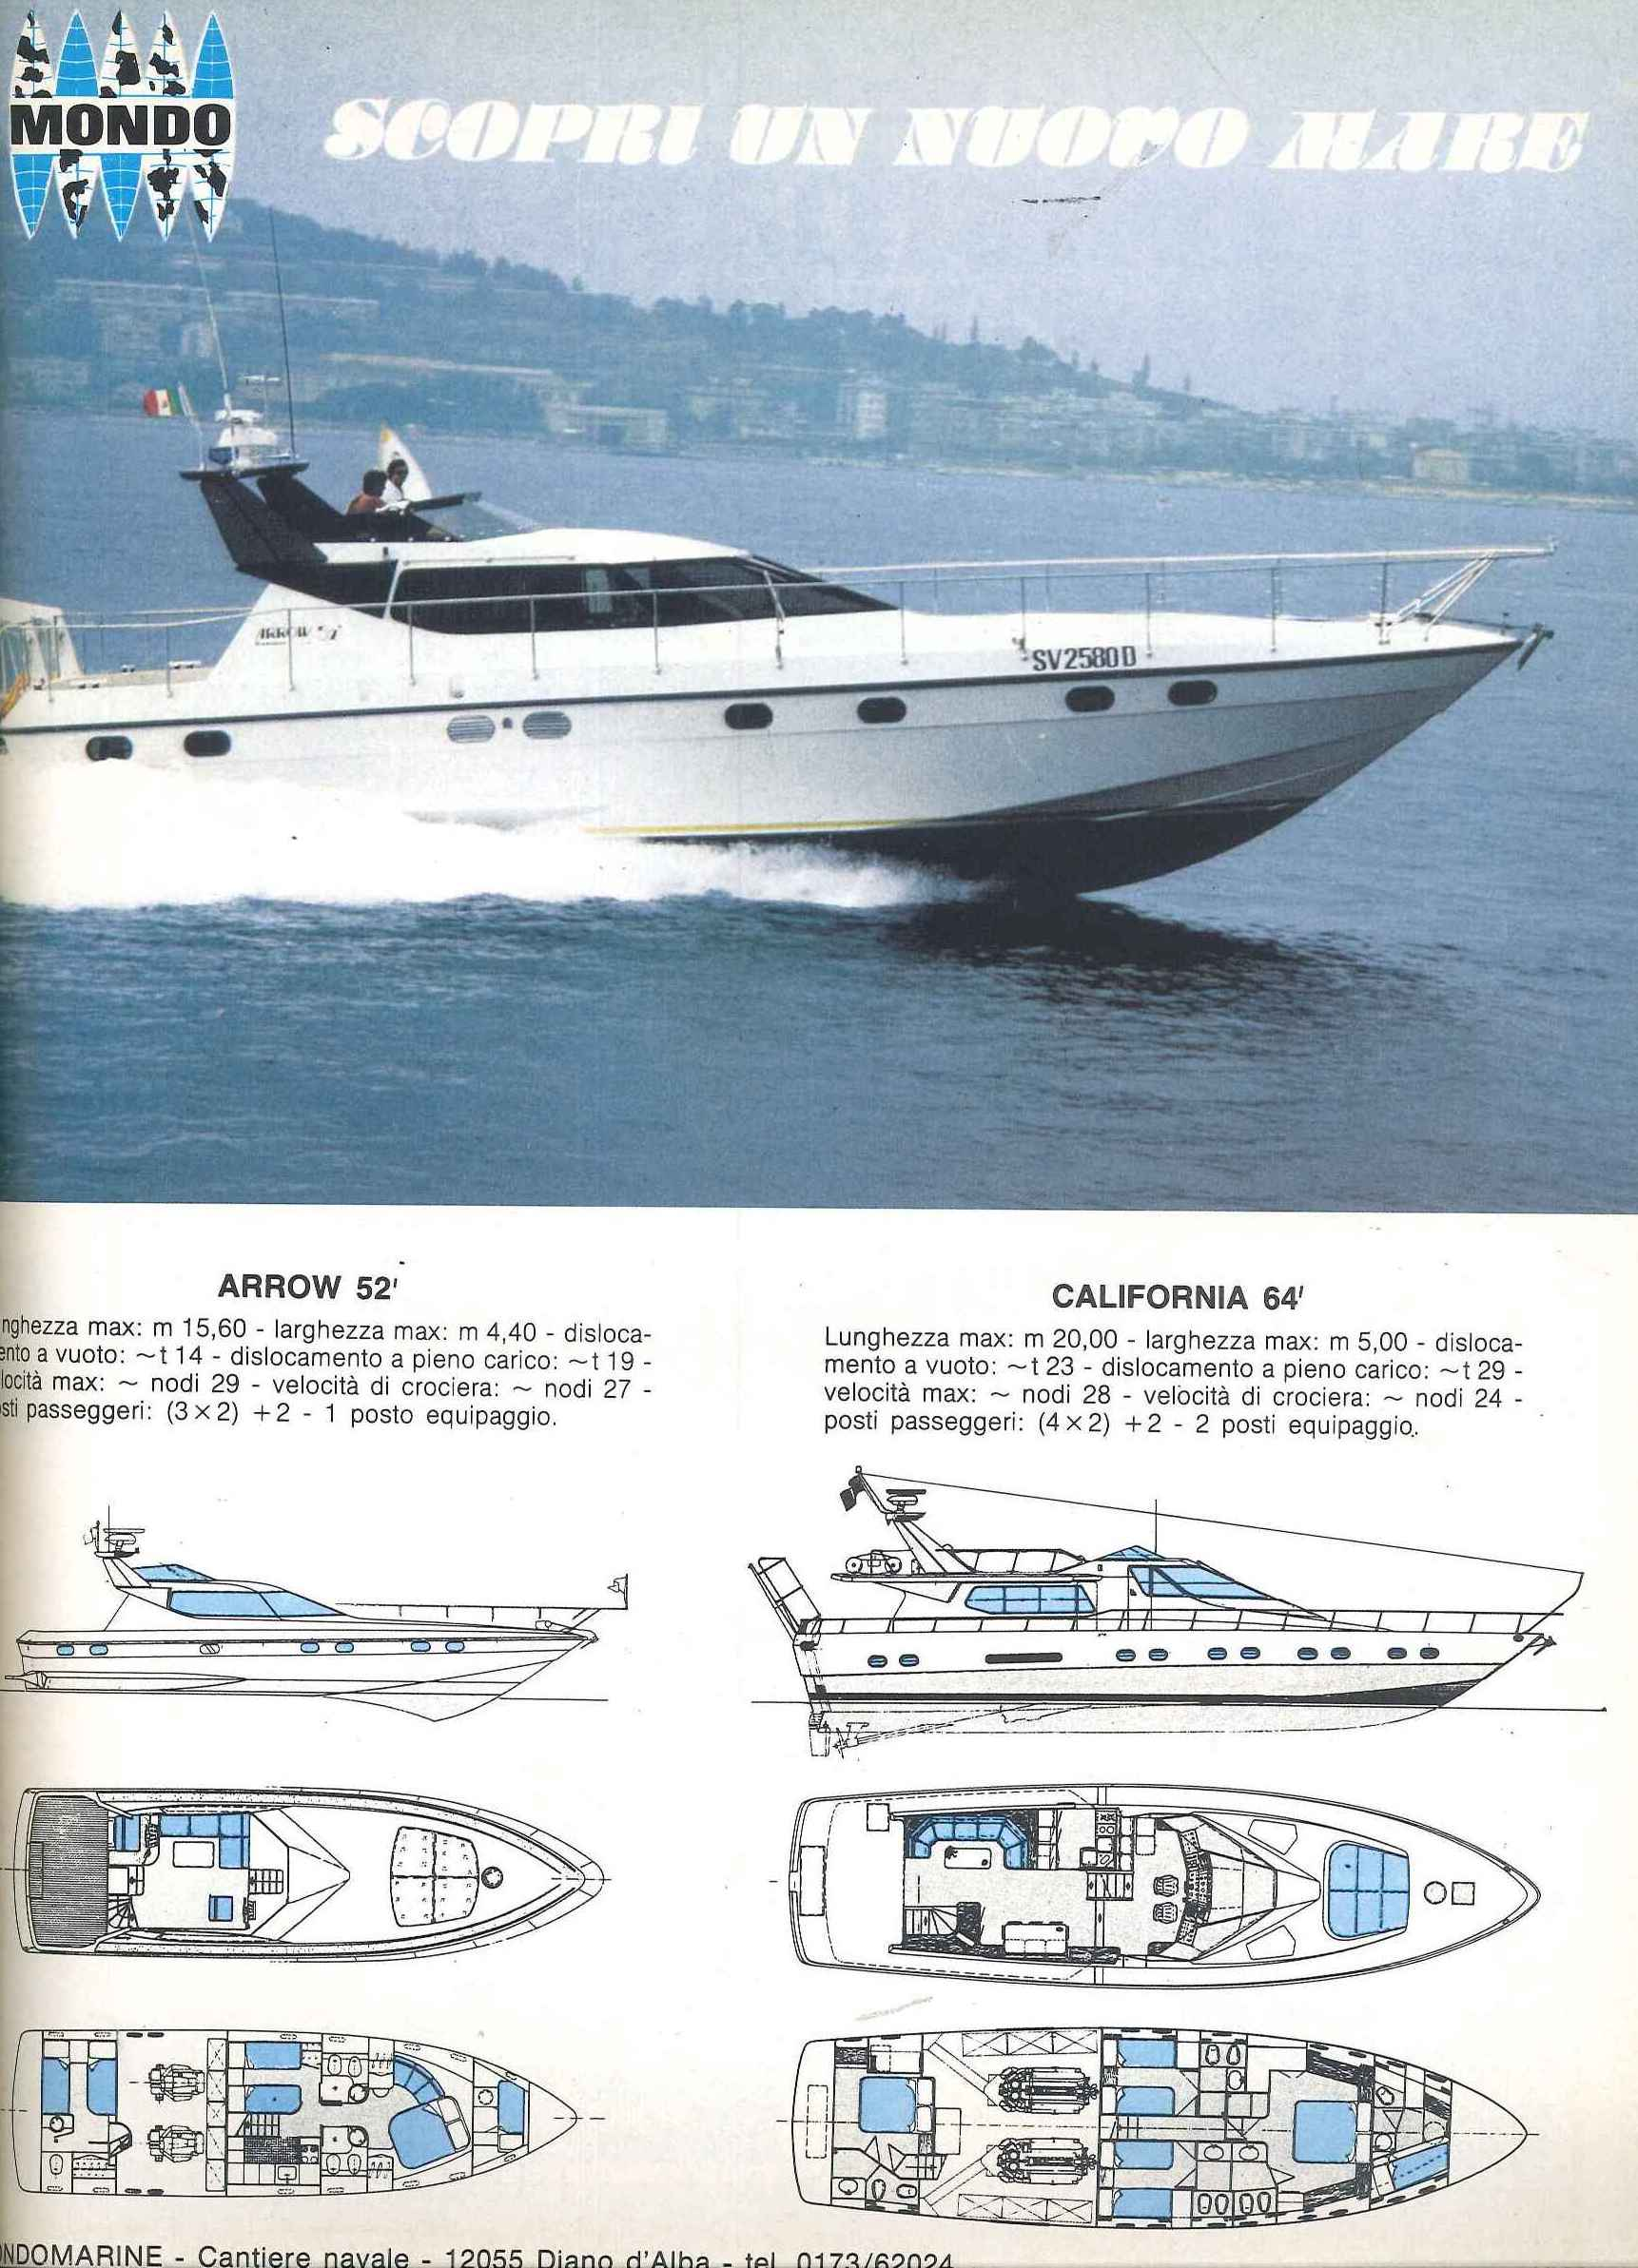 1984 05 ADV MONDOMARINE ARROW 52 UOMO MARE N°77 (16).jpg